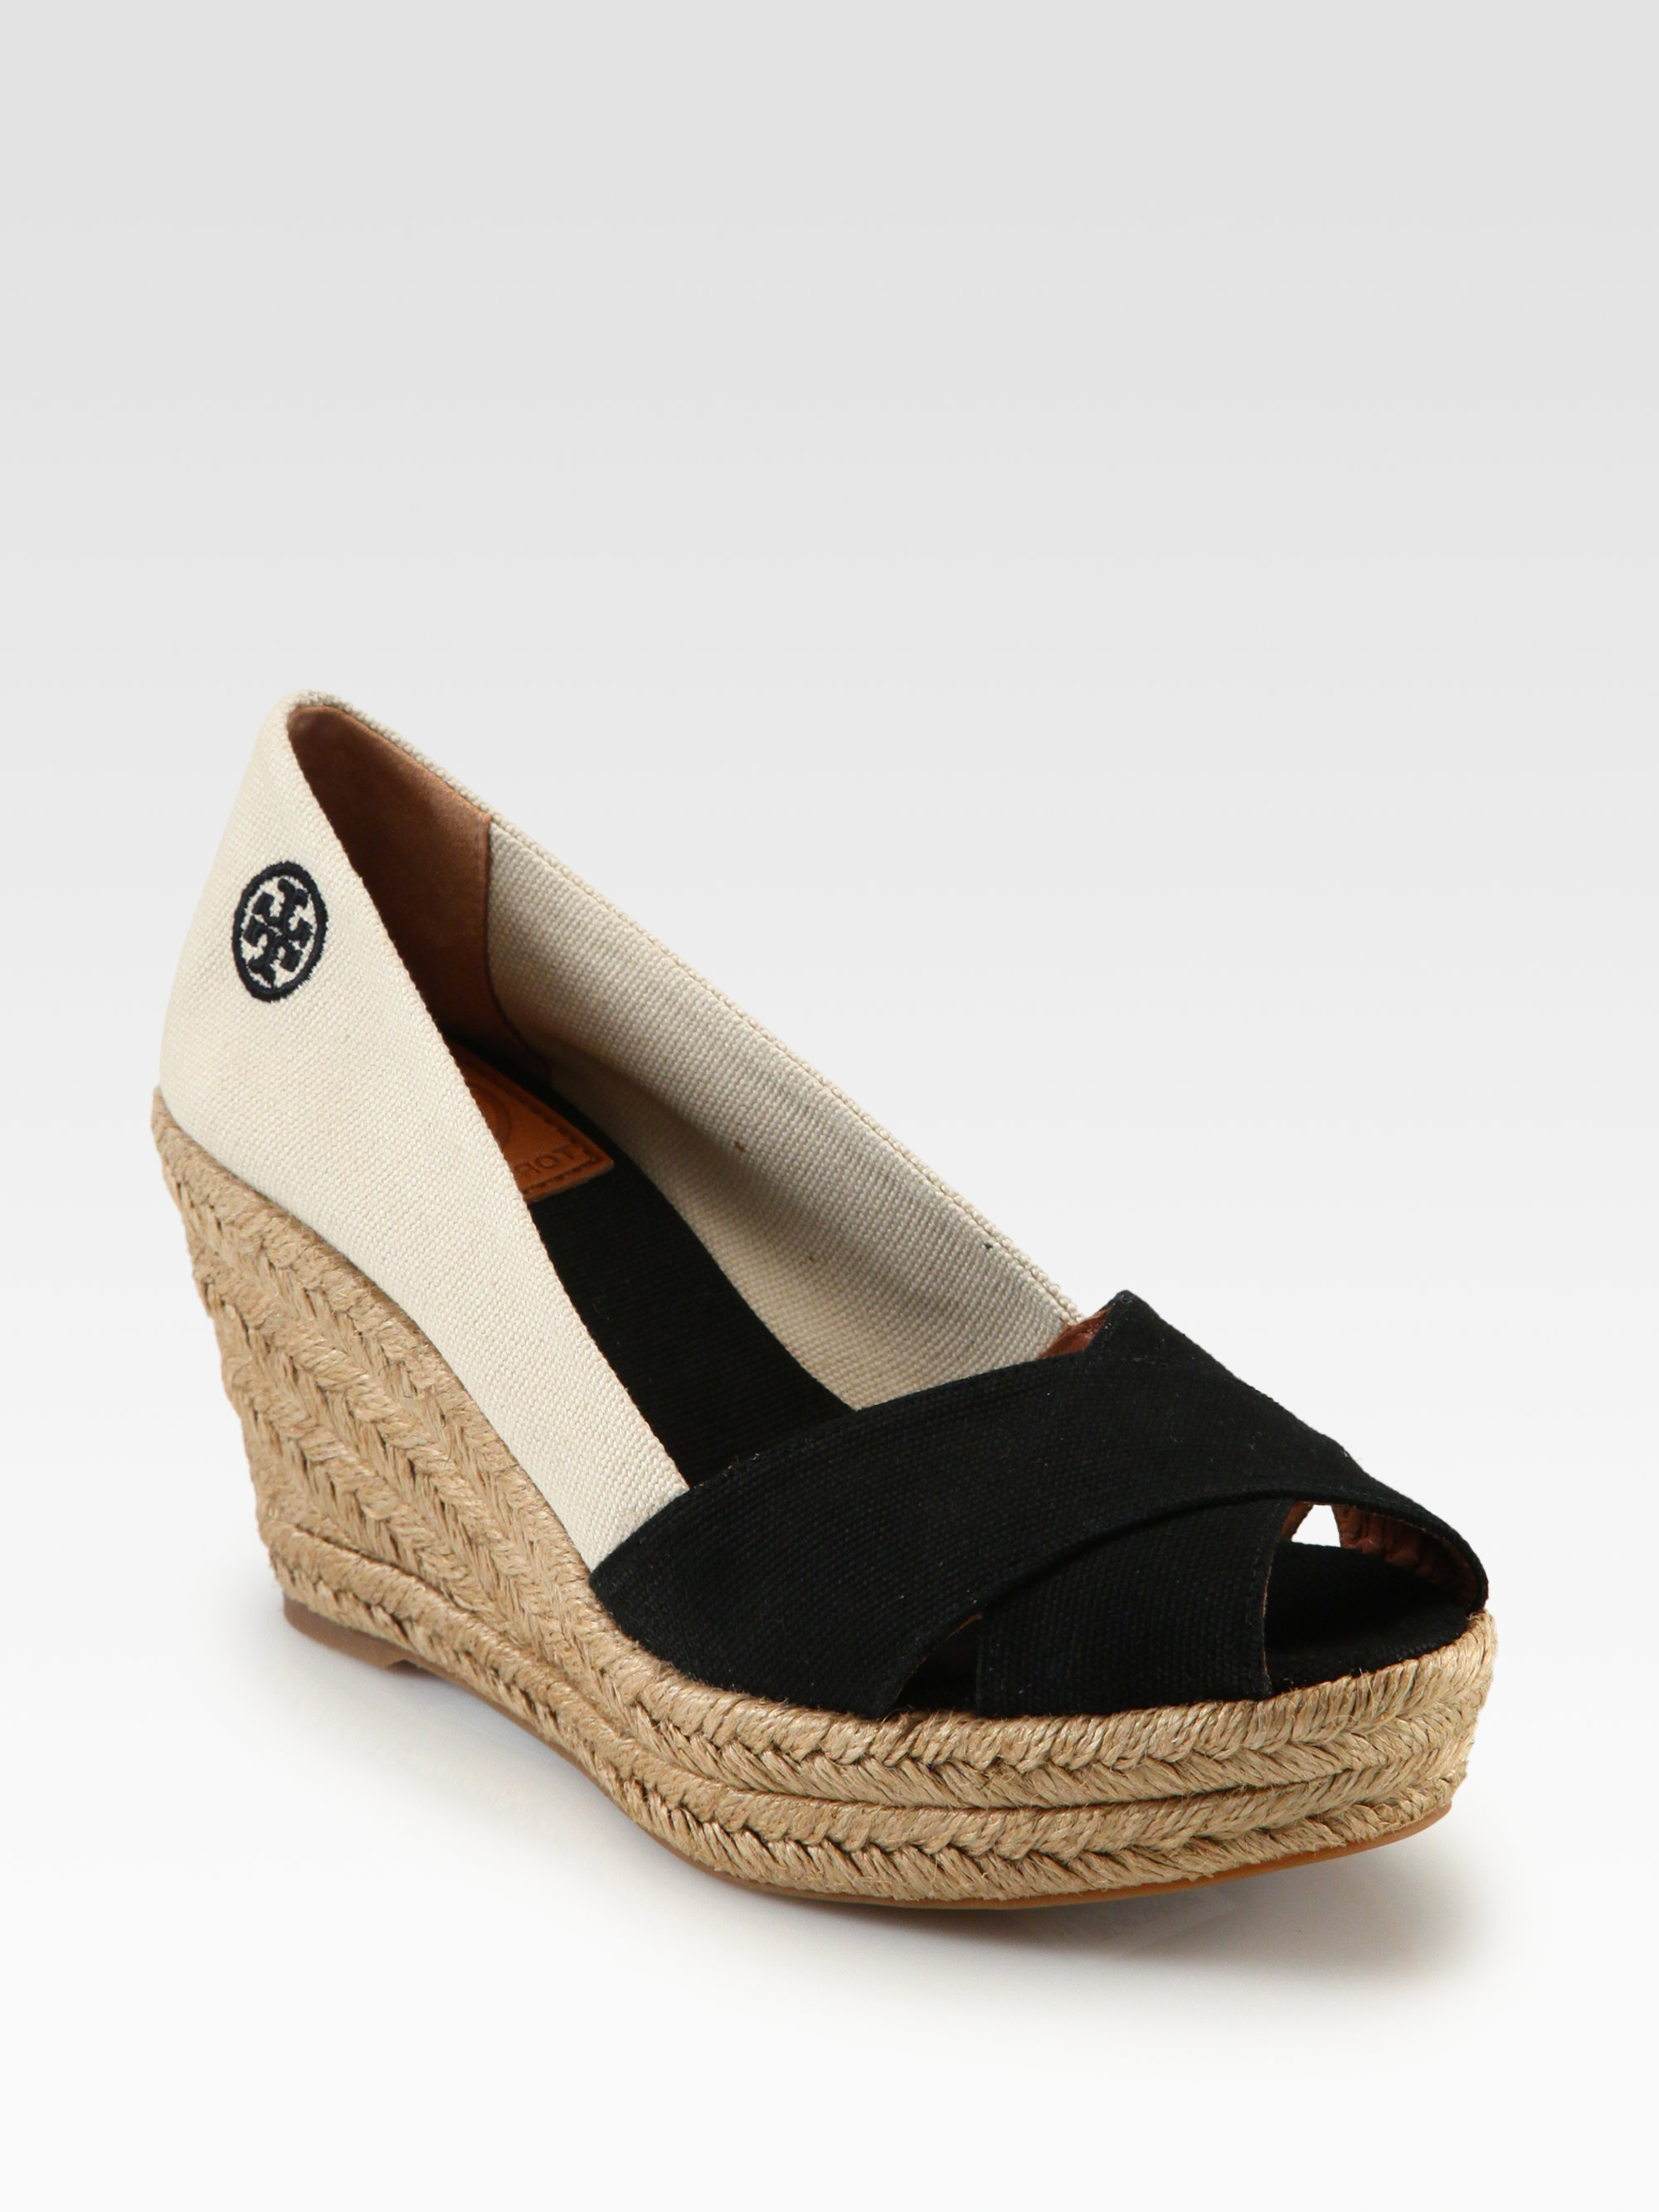 5e0c24a3f Tory Burch Filipa Canvas Espadrille Wedges in Orange - Lyst